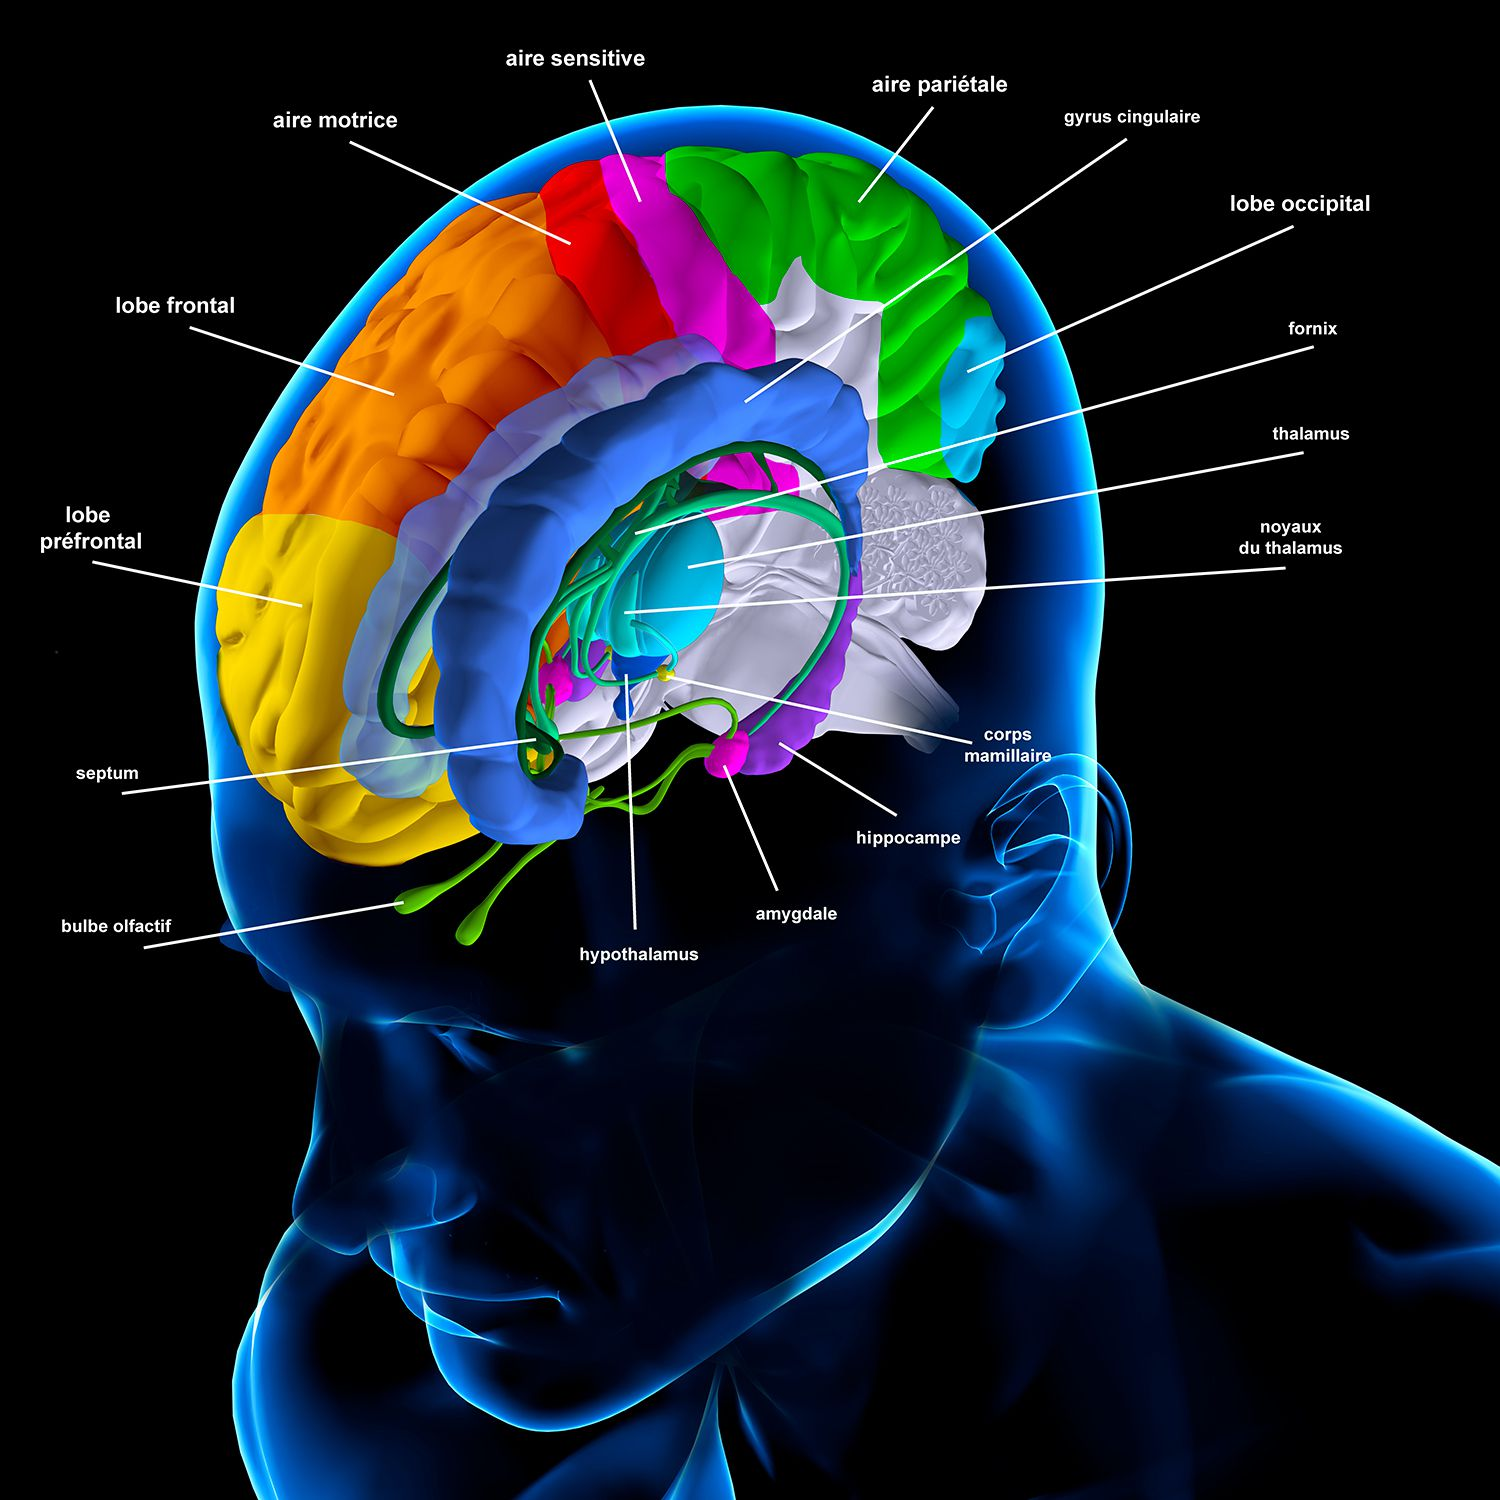 Meninges: Function and Layers, and Health Problems